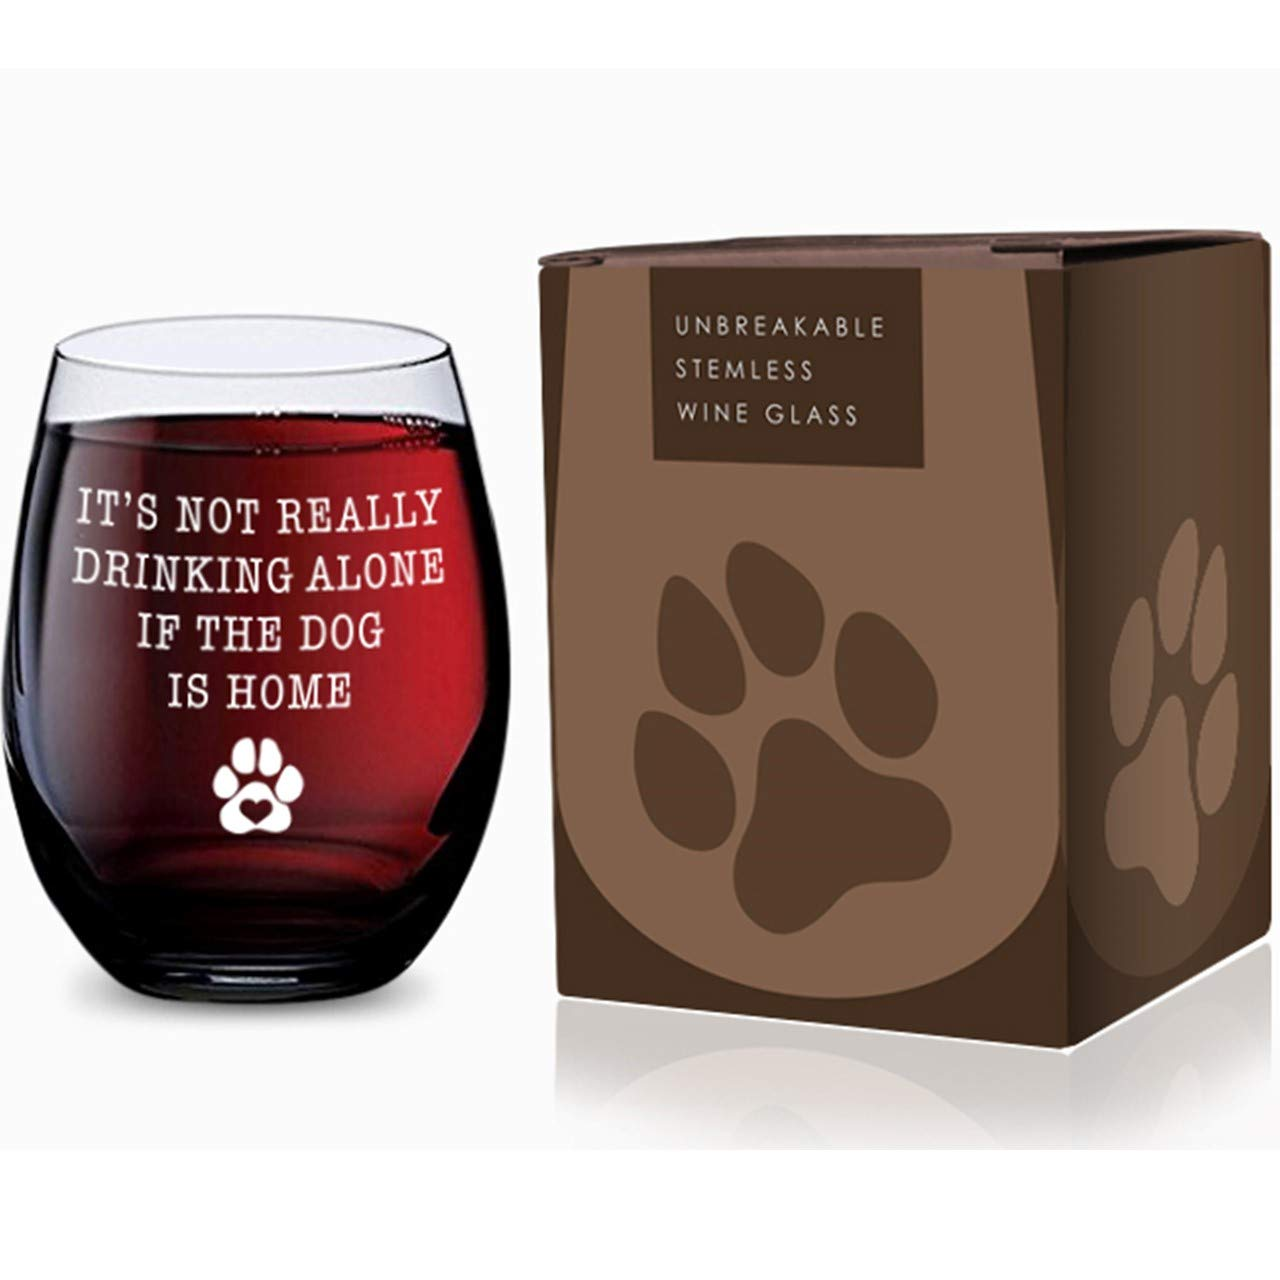 Stemless Wine Glass for Pet Lovers (Its Not Drinking Alone If the Dog is Home) Made of Unbreakable Tritan Plastic and Dishwasher Safe - 16 ounces